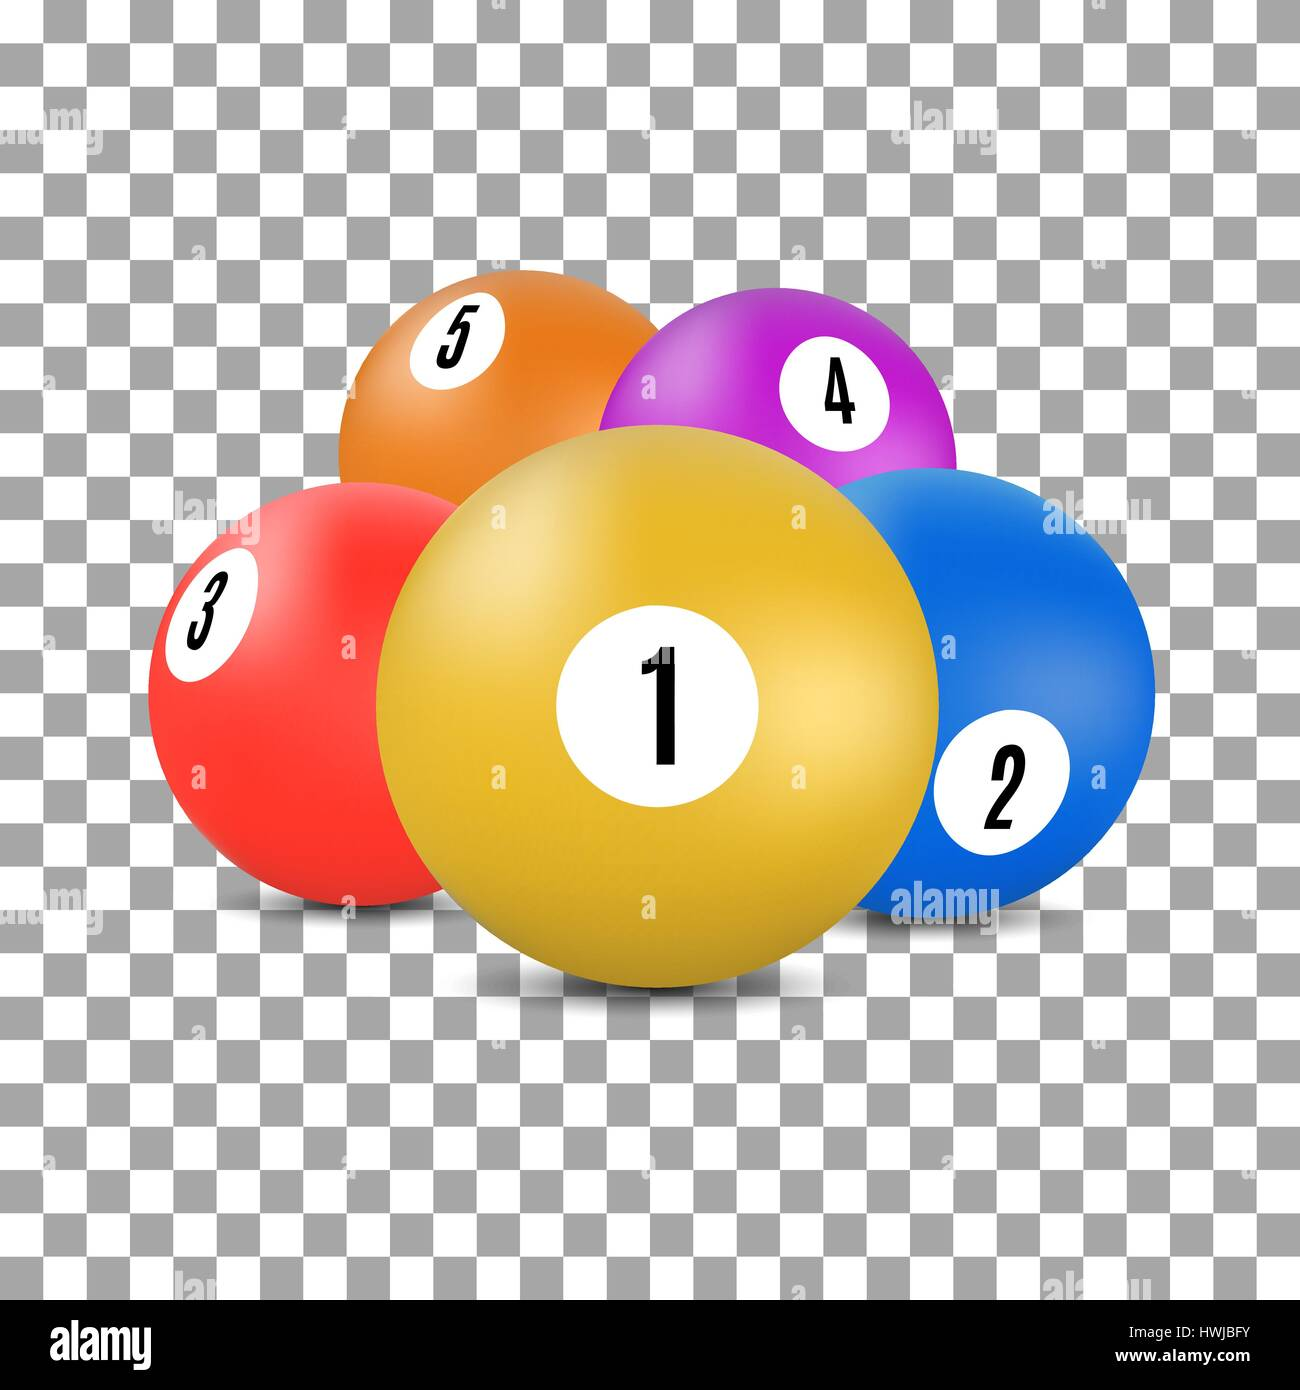 Multicolored balls with numbers for a game of snooker and billiards in 3D style, vector illustration. Stock Vector